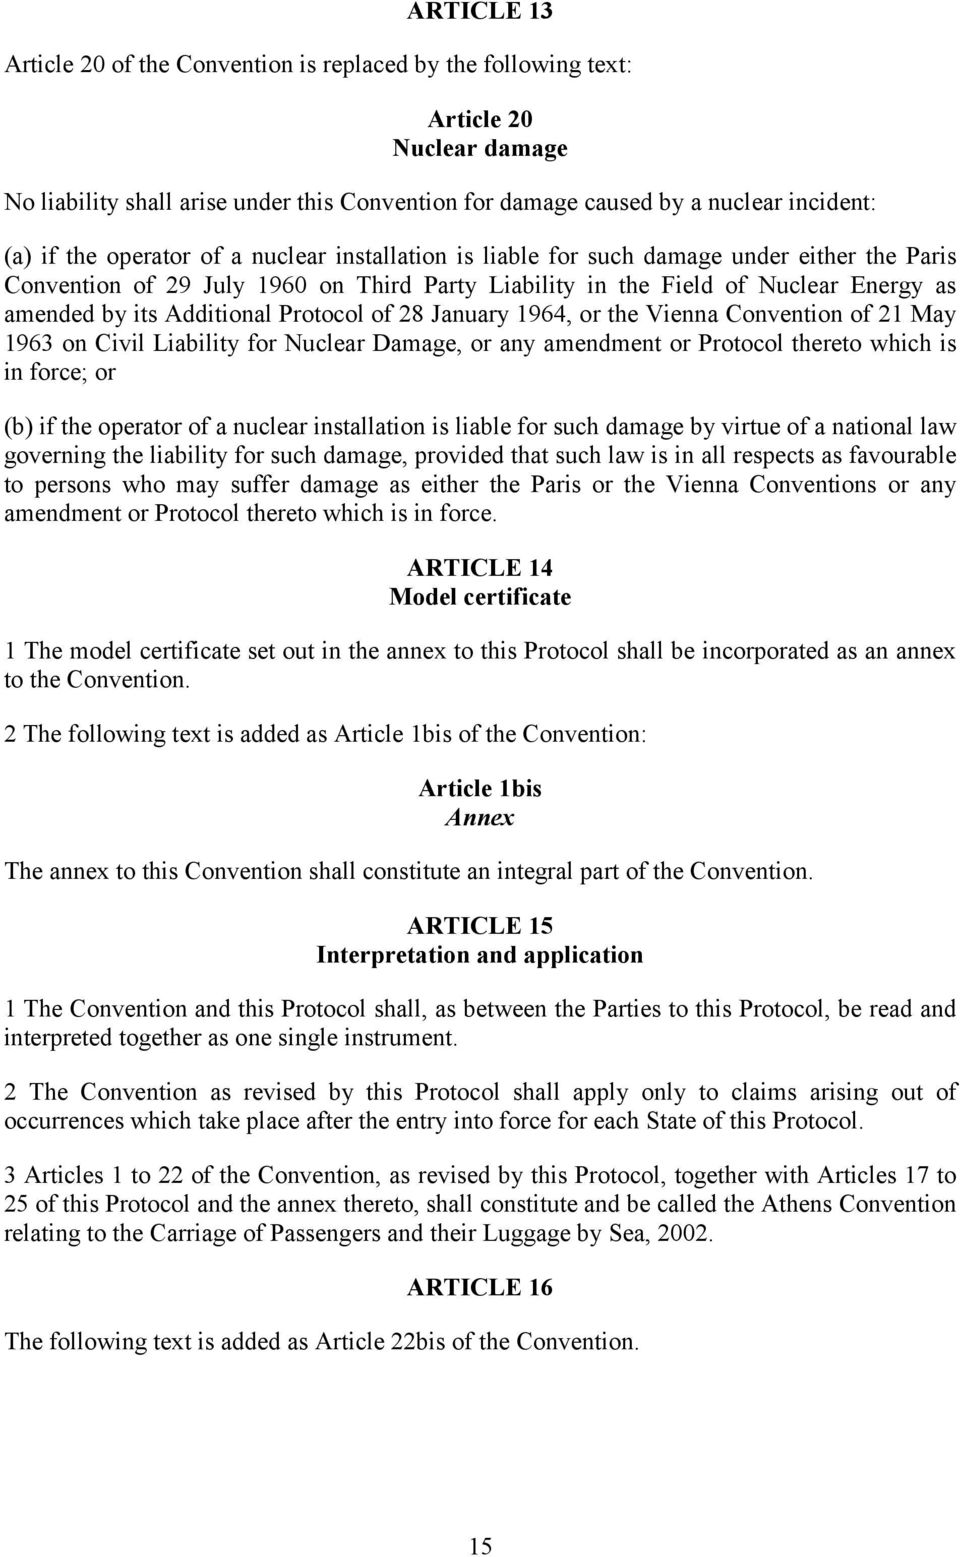 Protocol of 28 January 1964, or the Vienna Convention of 21 May 1963 on Civil Liability for Nuclear Damage, or any amendment or Protocol thereto which is in force; or (b) if the operator of a nuclear